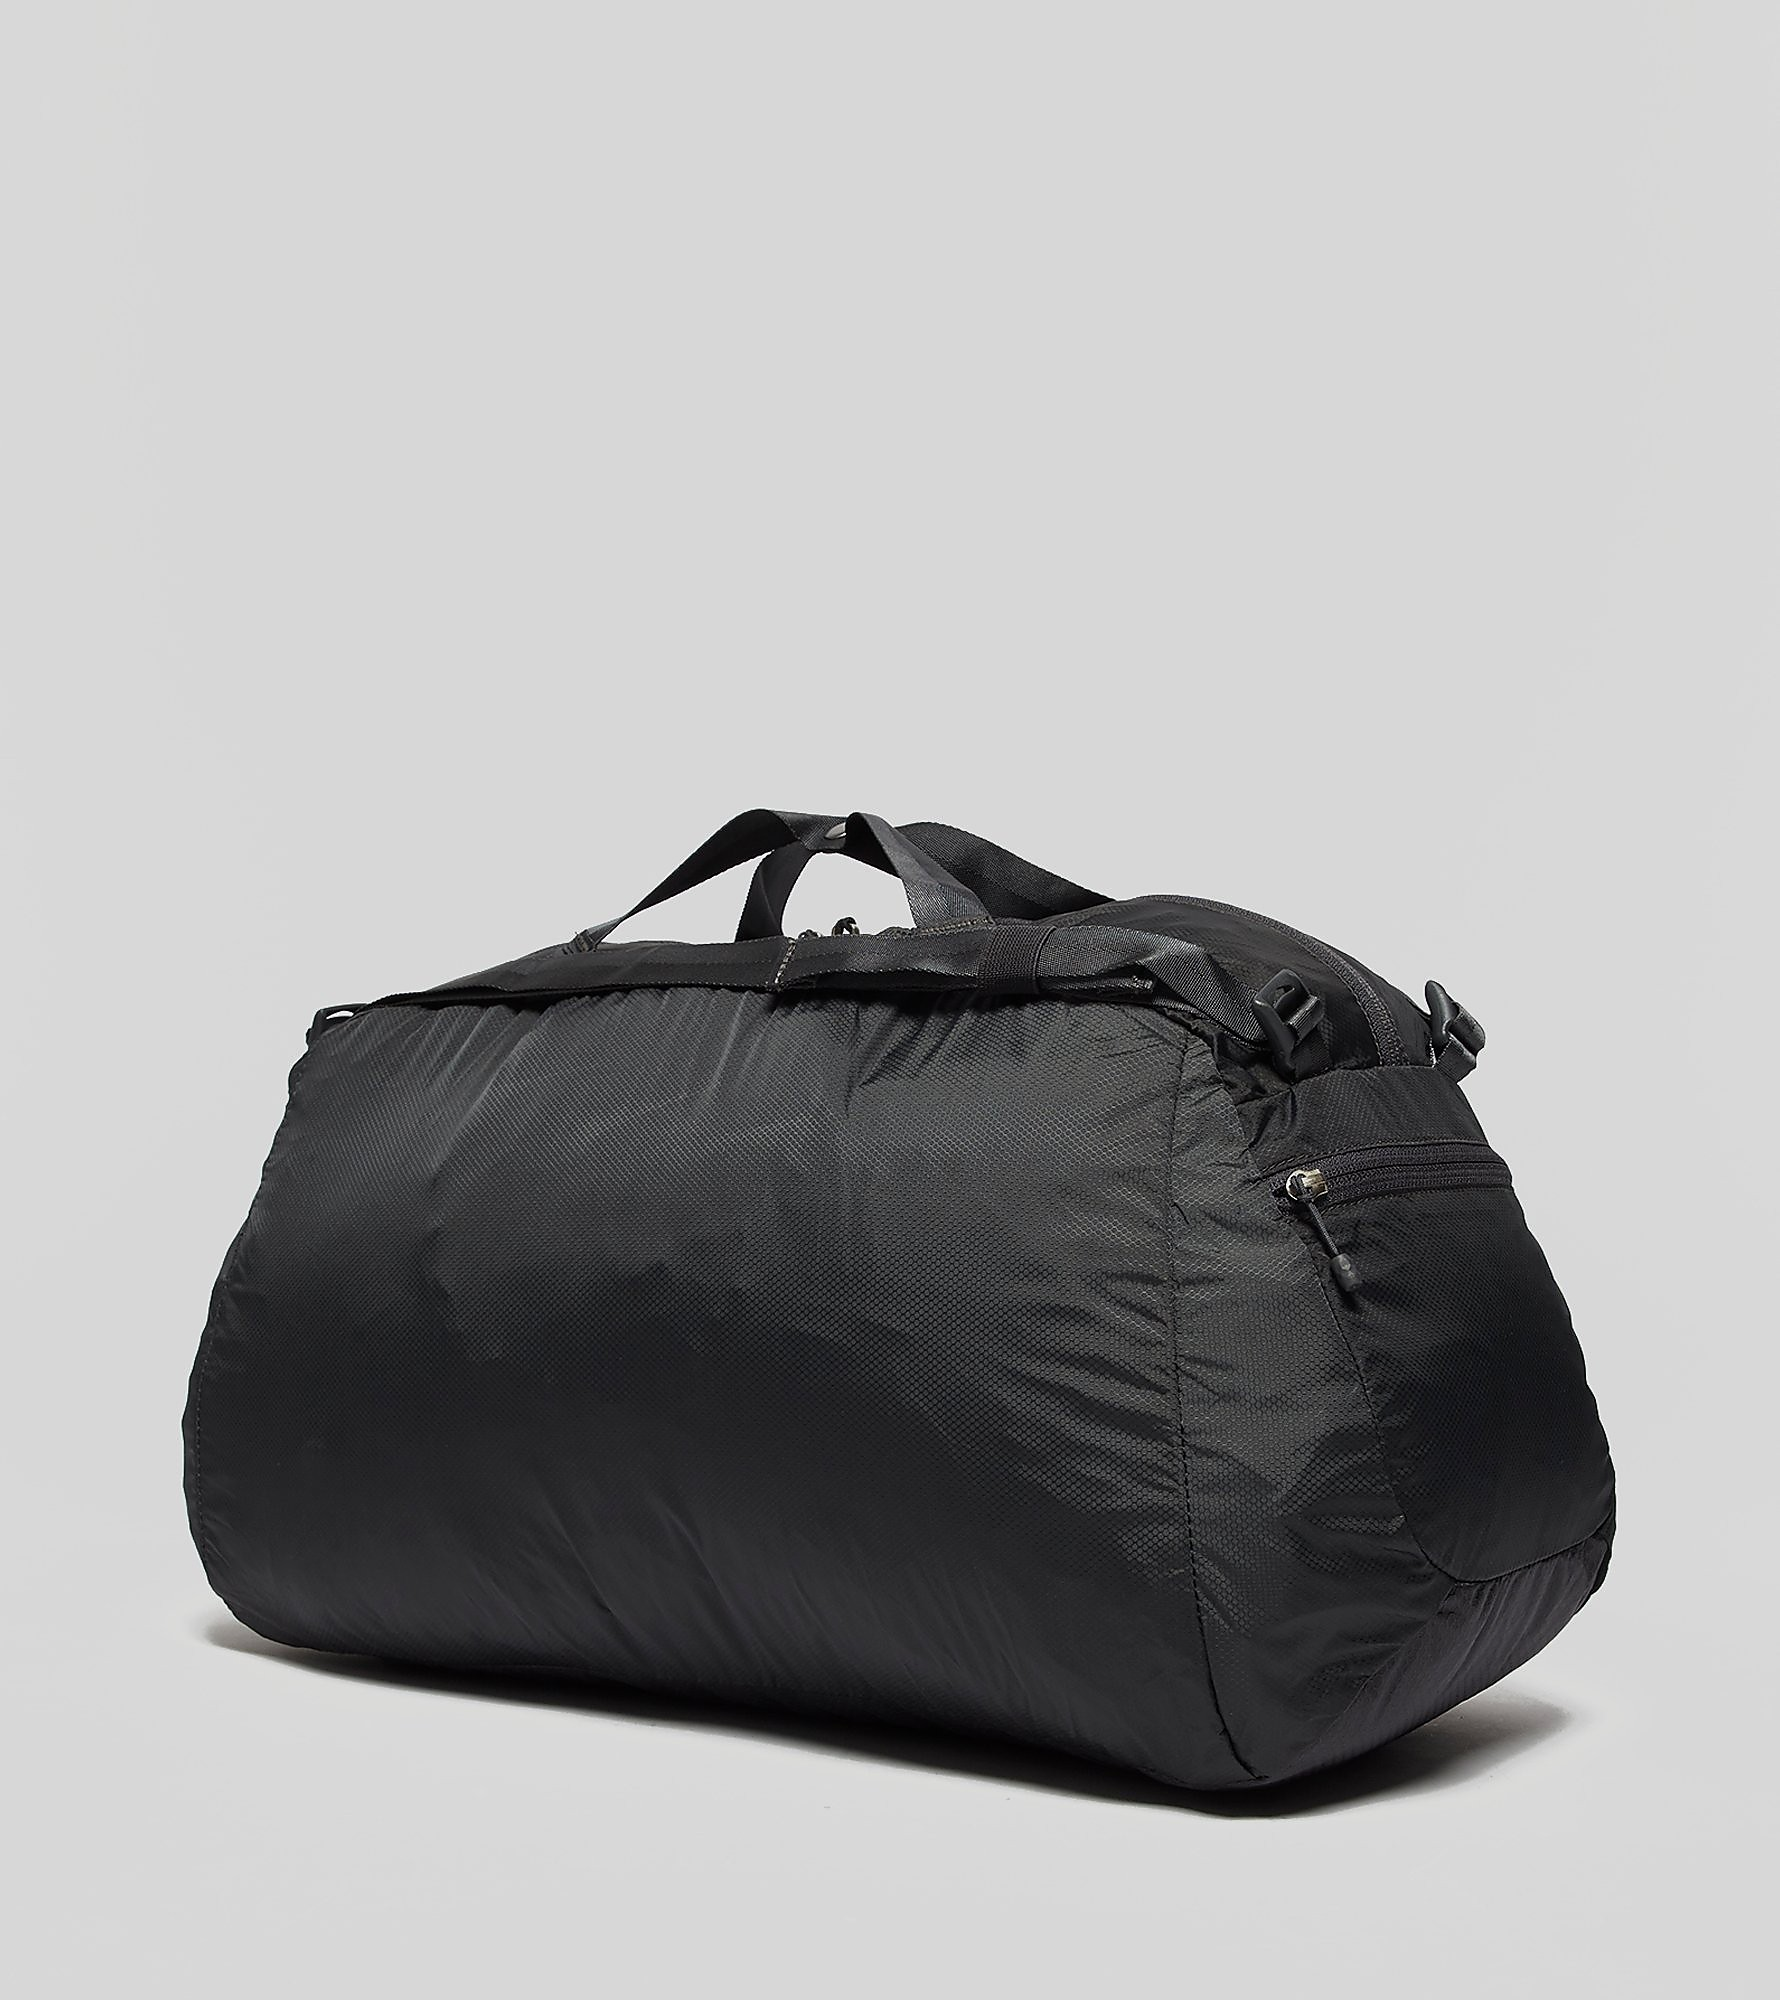 The North Face Flyweight Duffle Bag